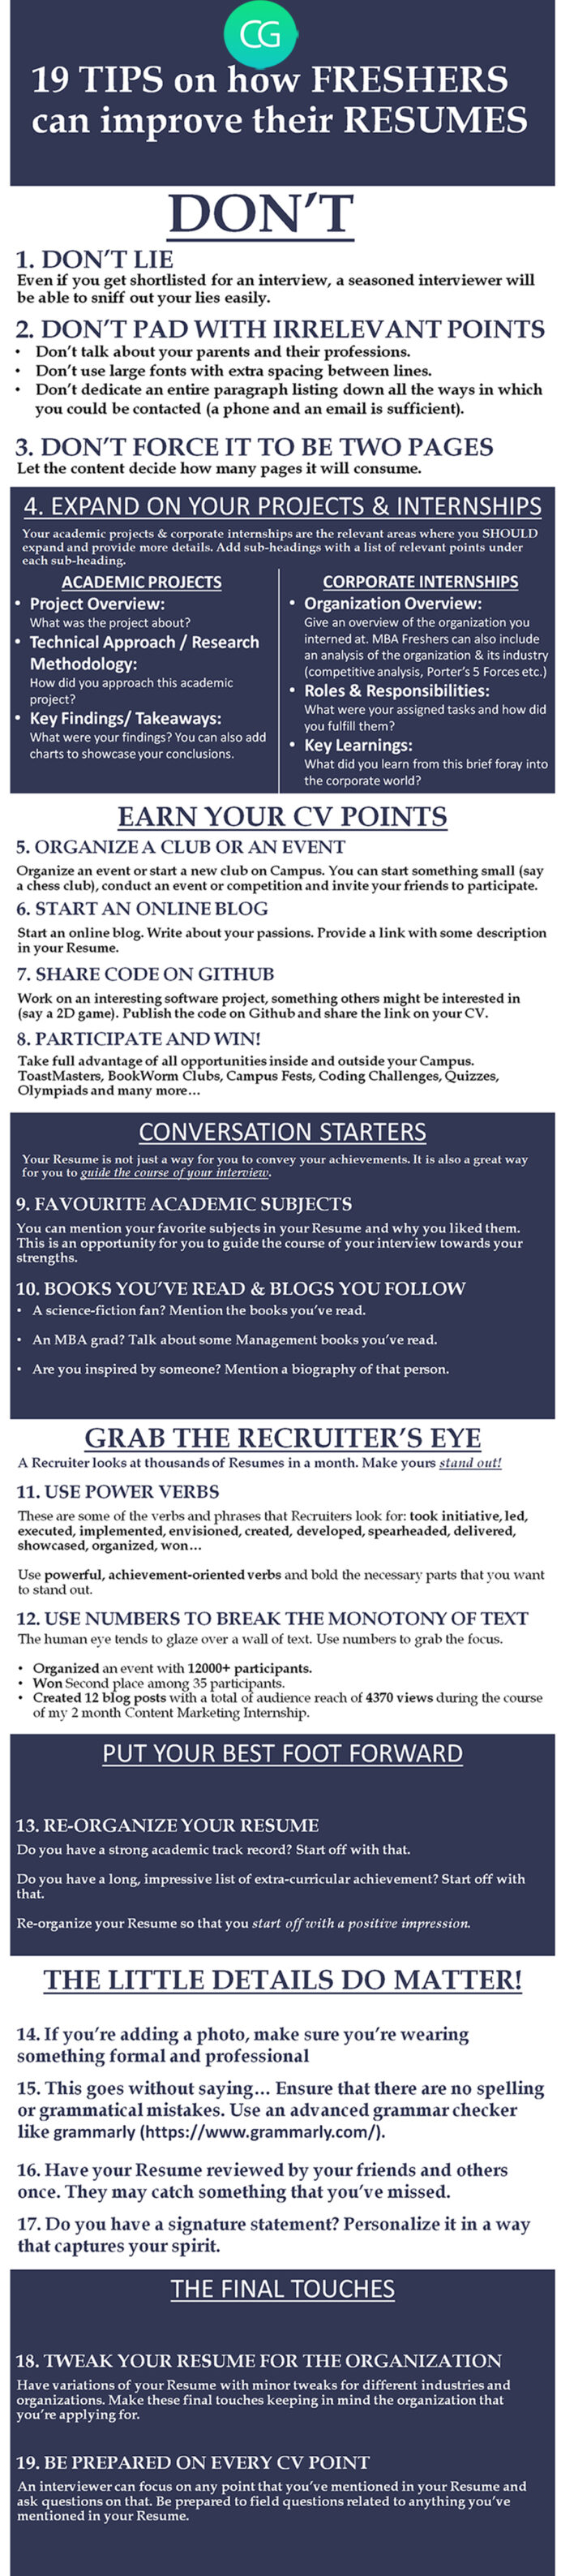 tips to improve your cv for freshers recruiter blog questions about resume their resumes Resume Questions About Your Resume